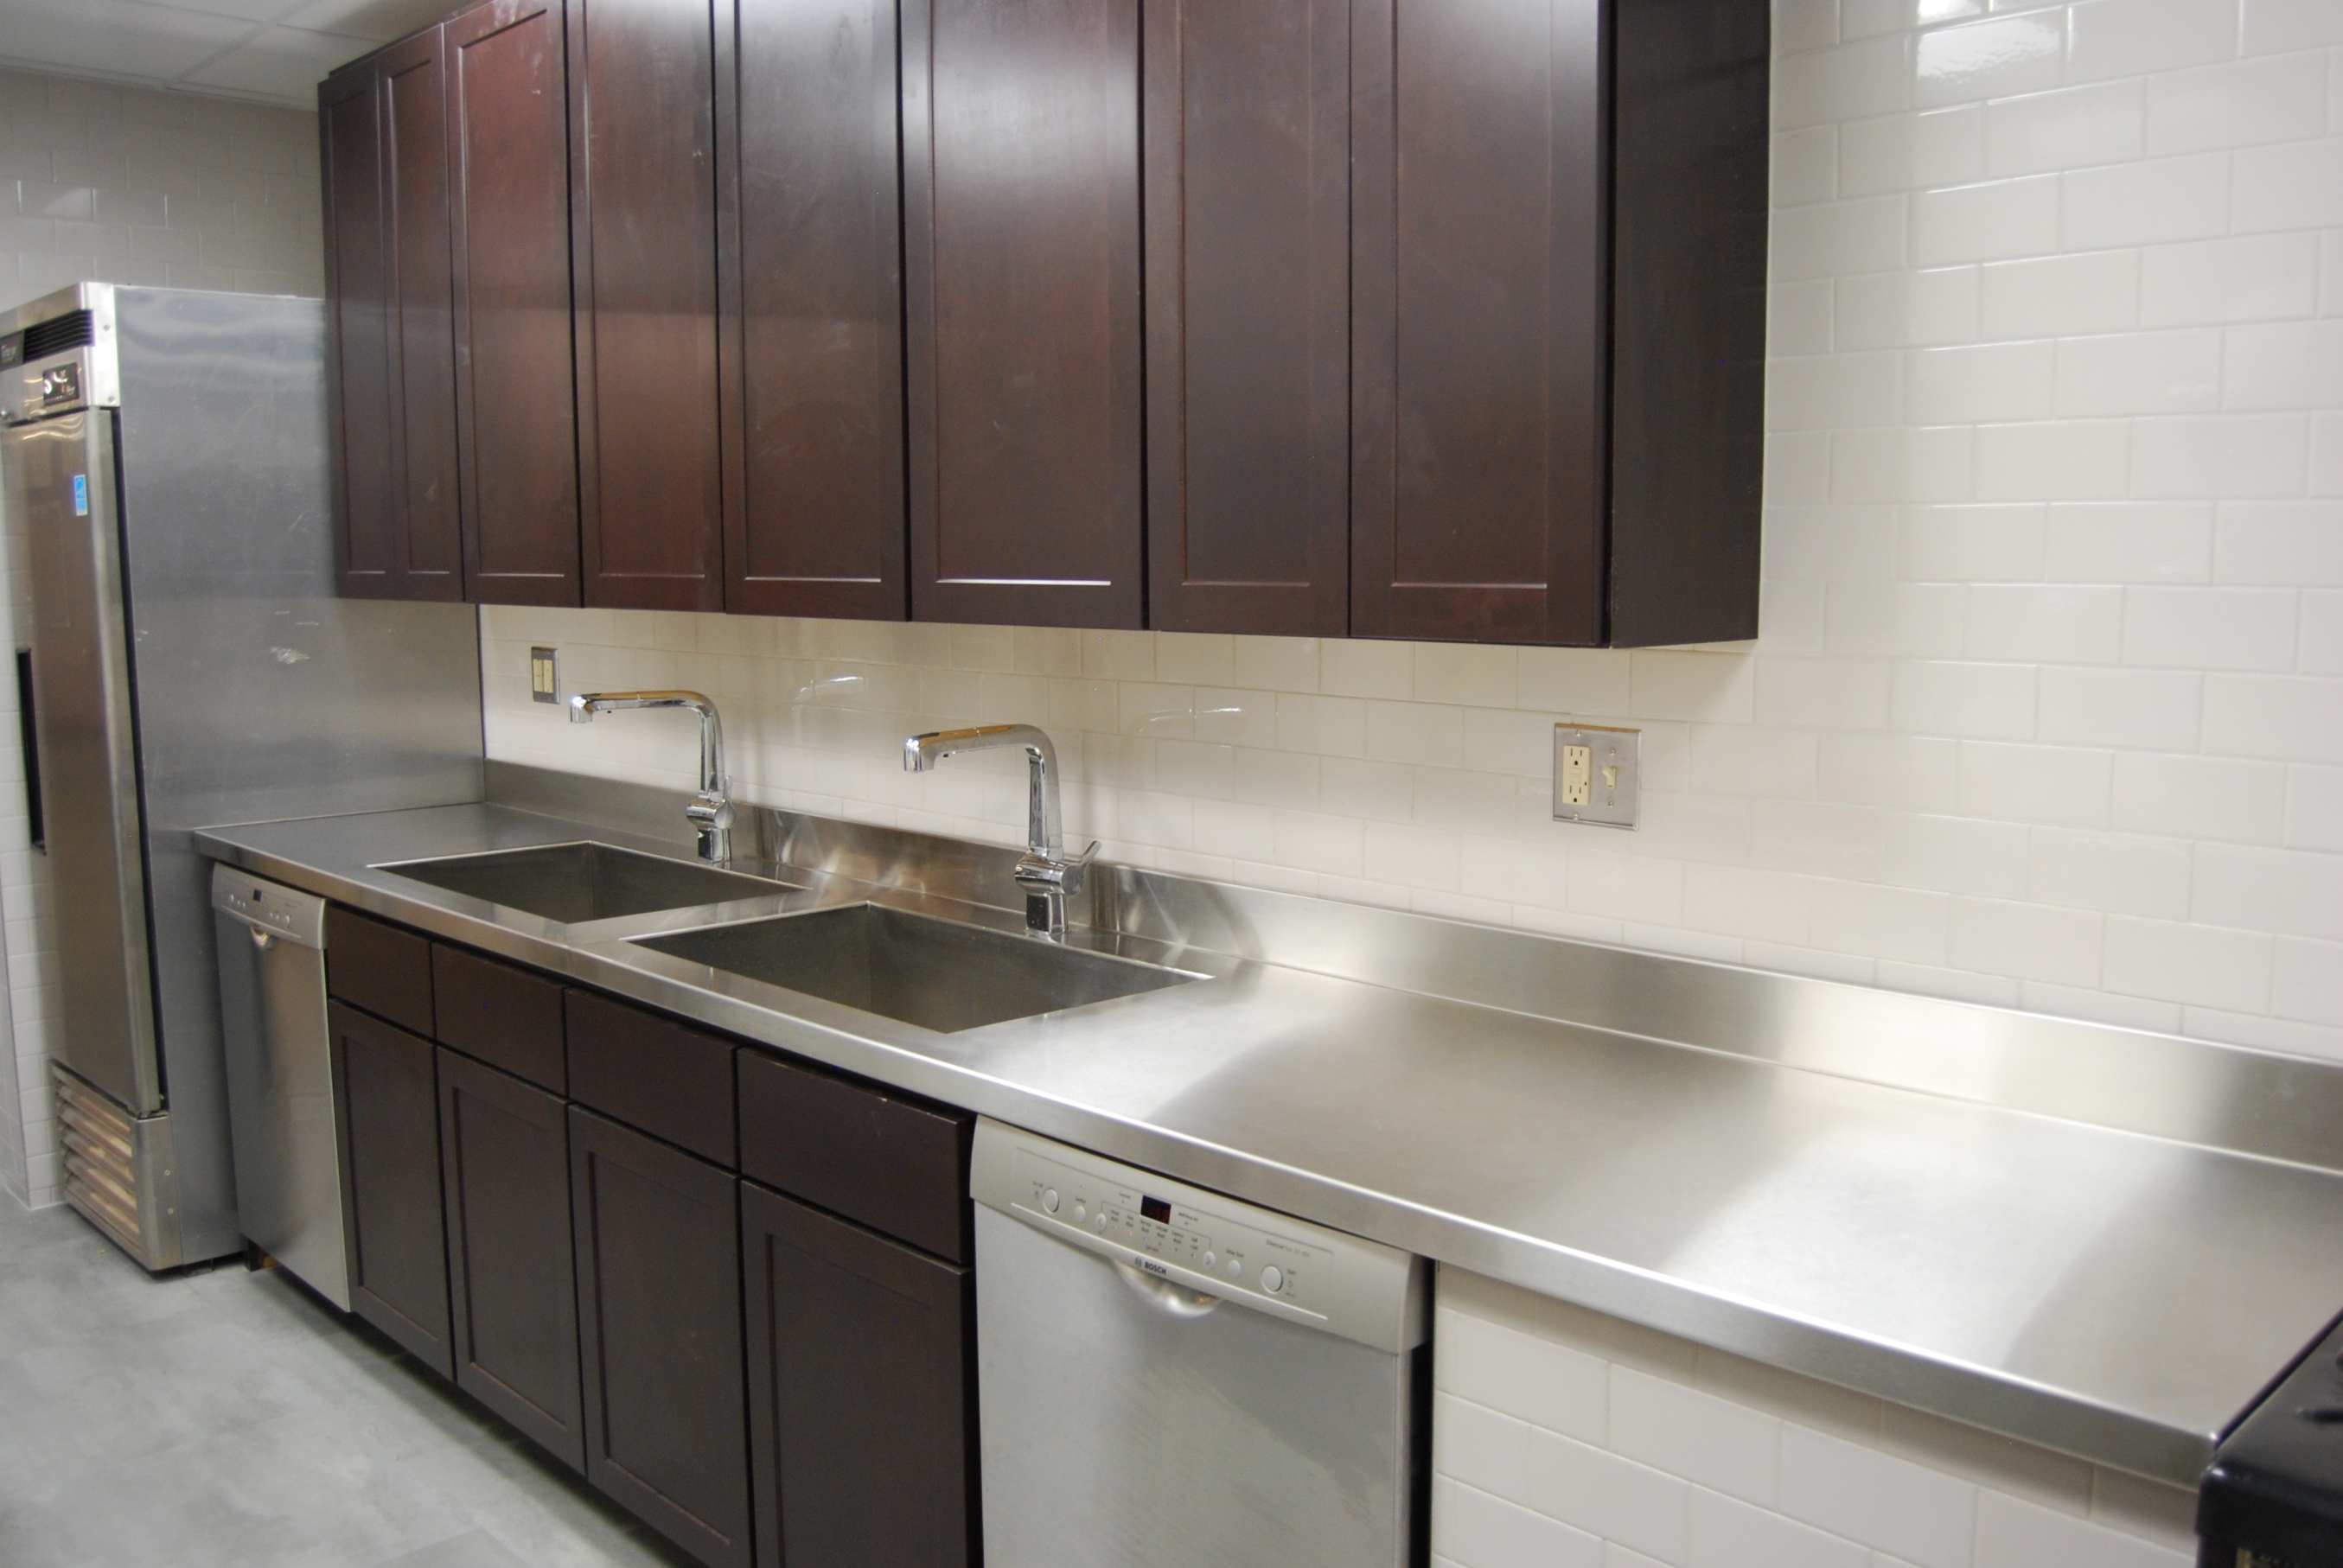 Stainless Steel Sink Countertop : stainless steel countertops kitchen countertops home design material ...